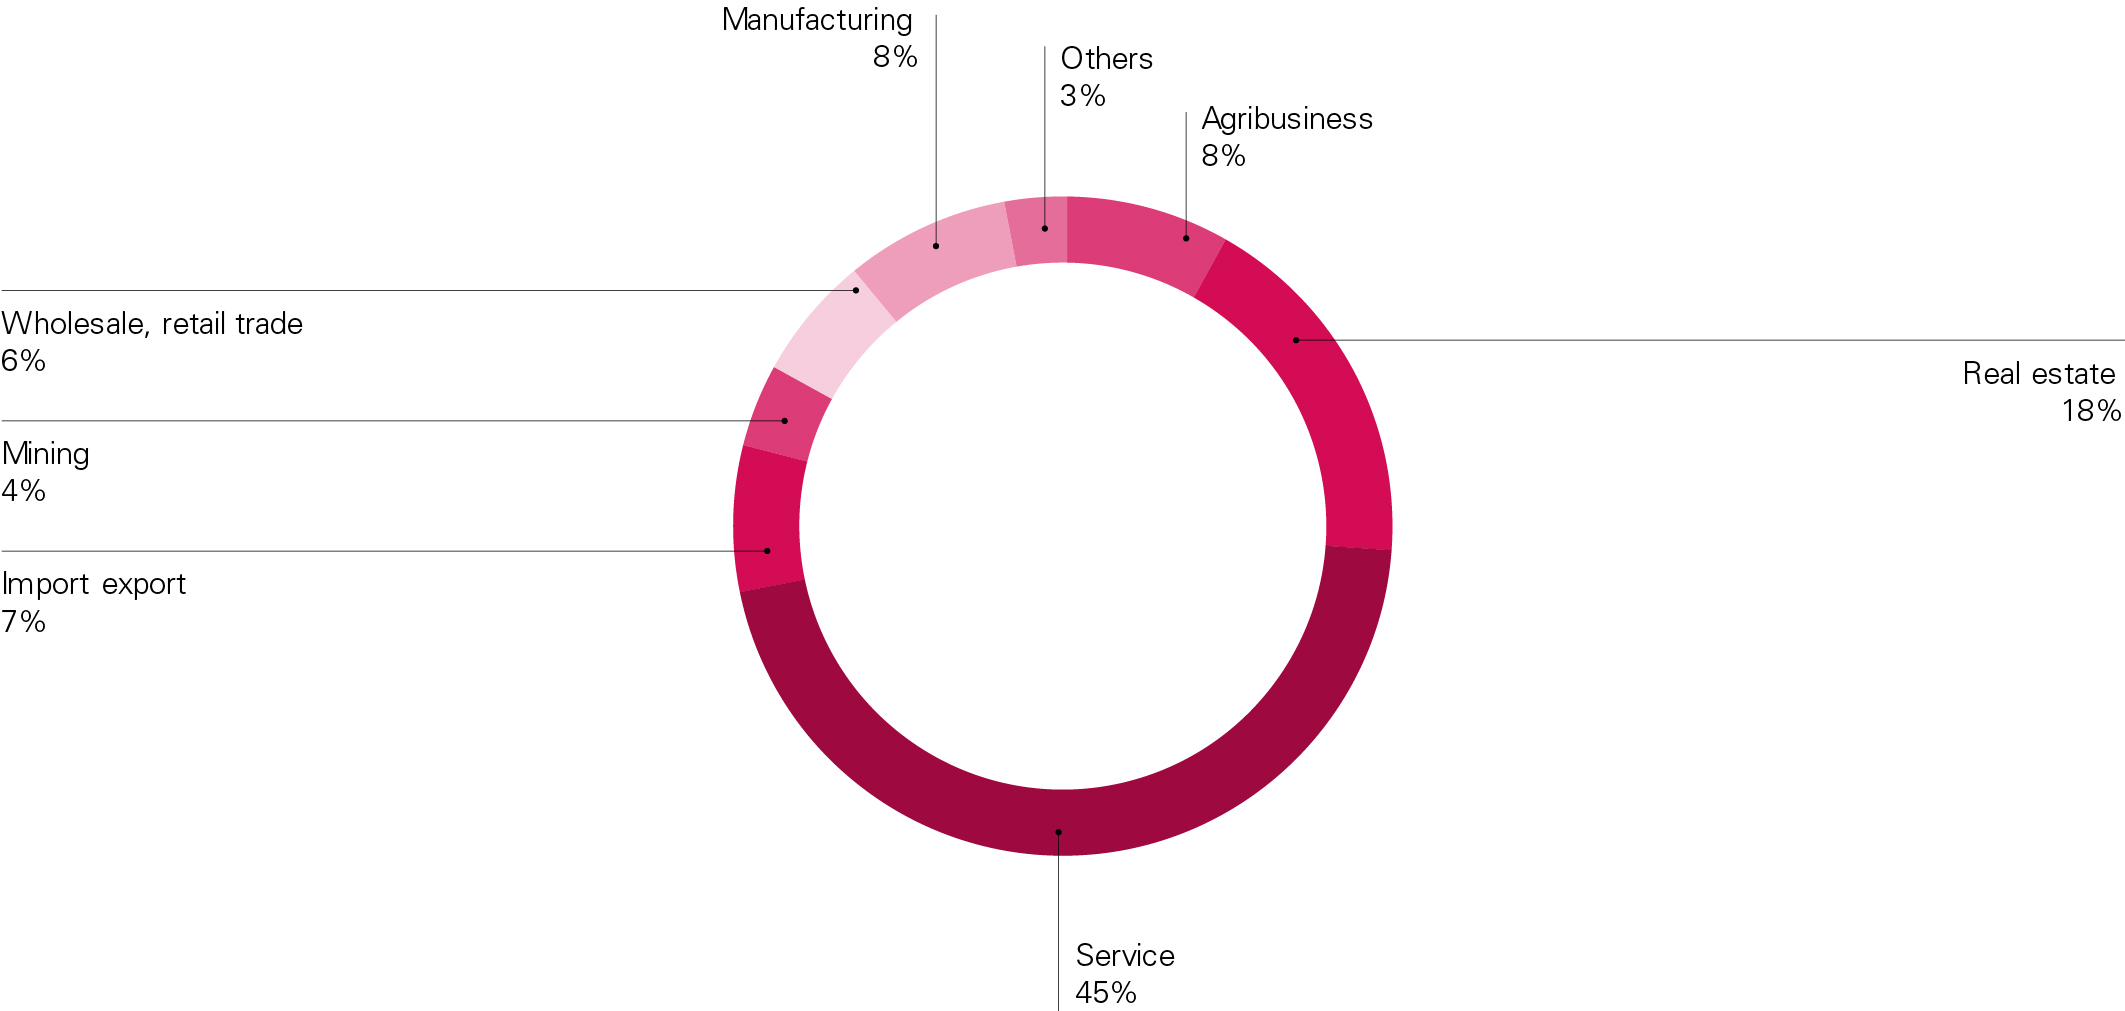 Companies by industry sector